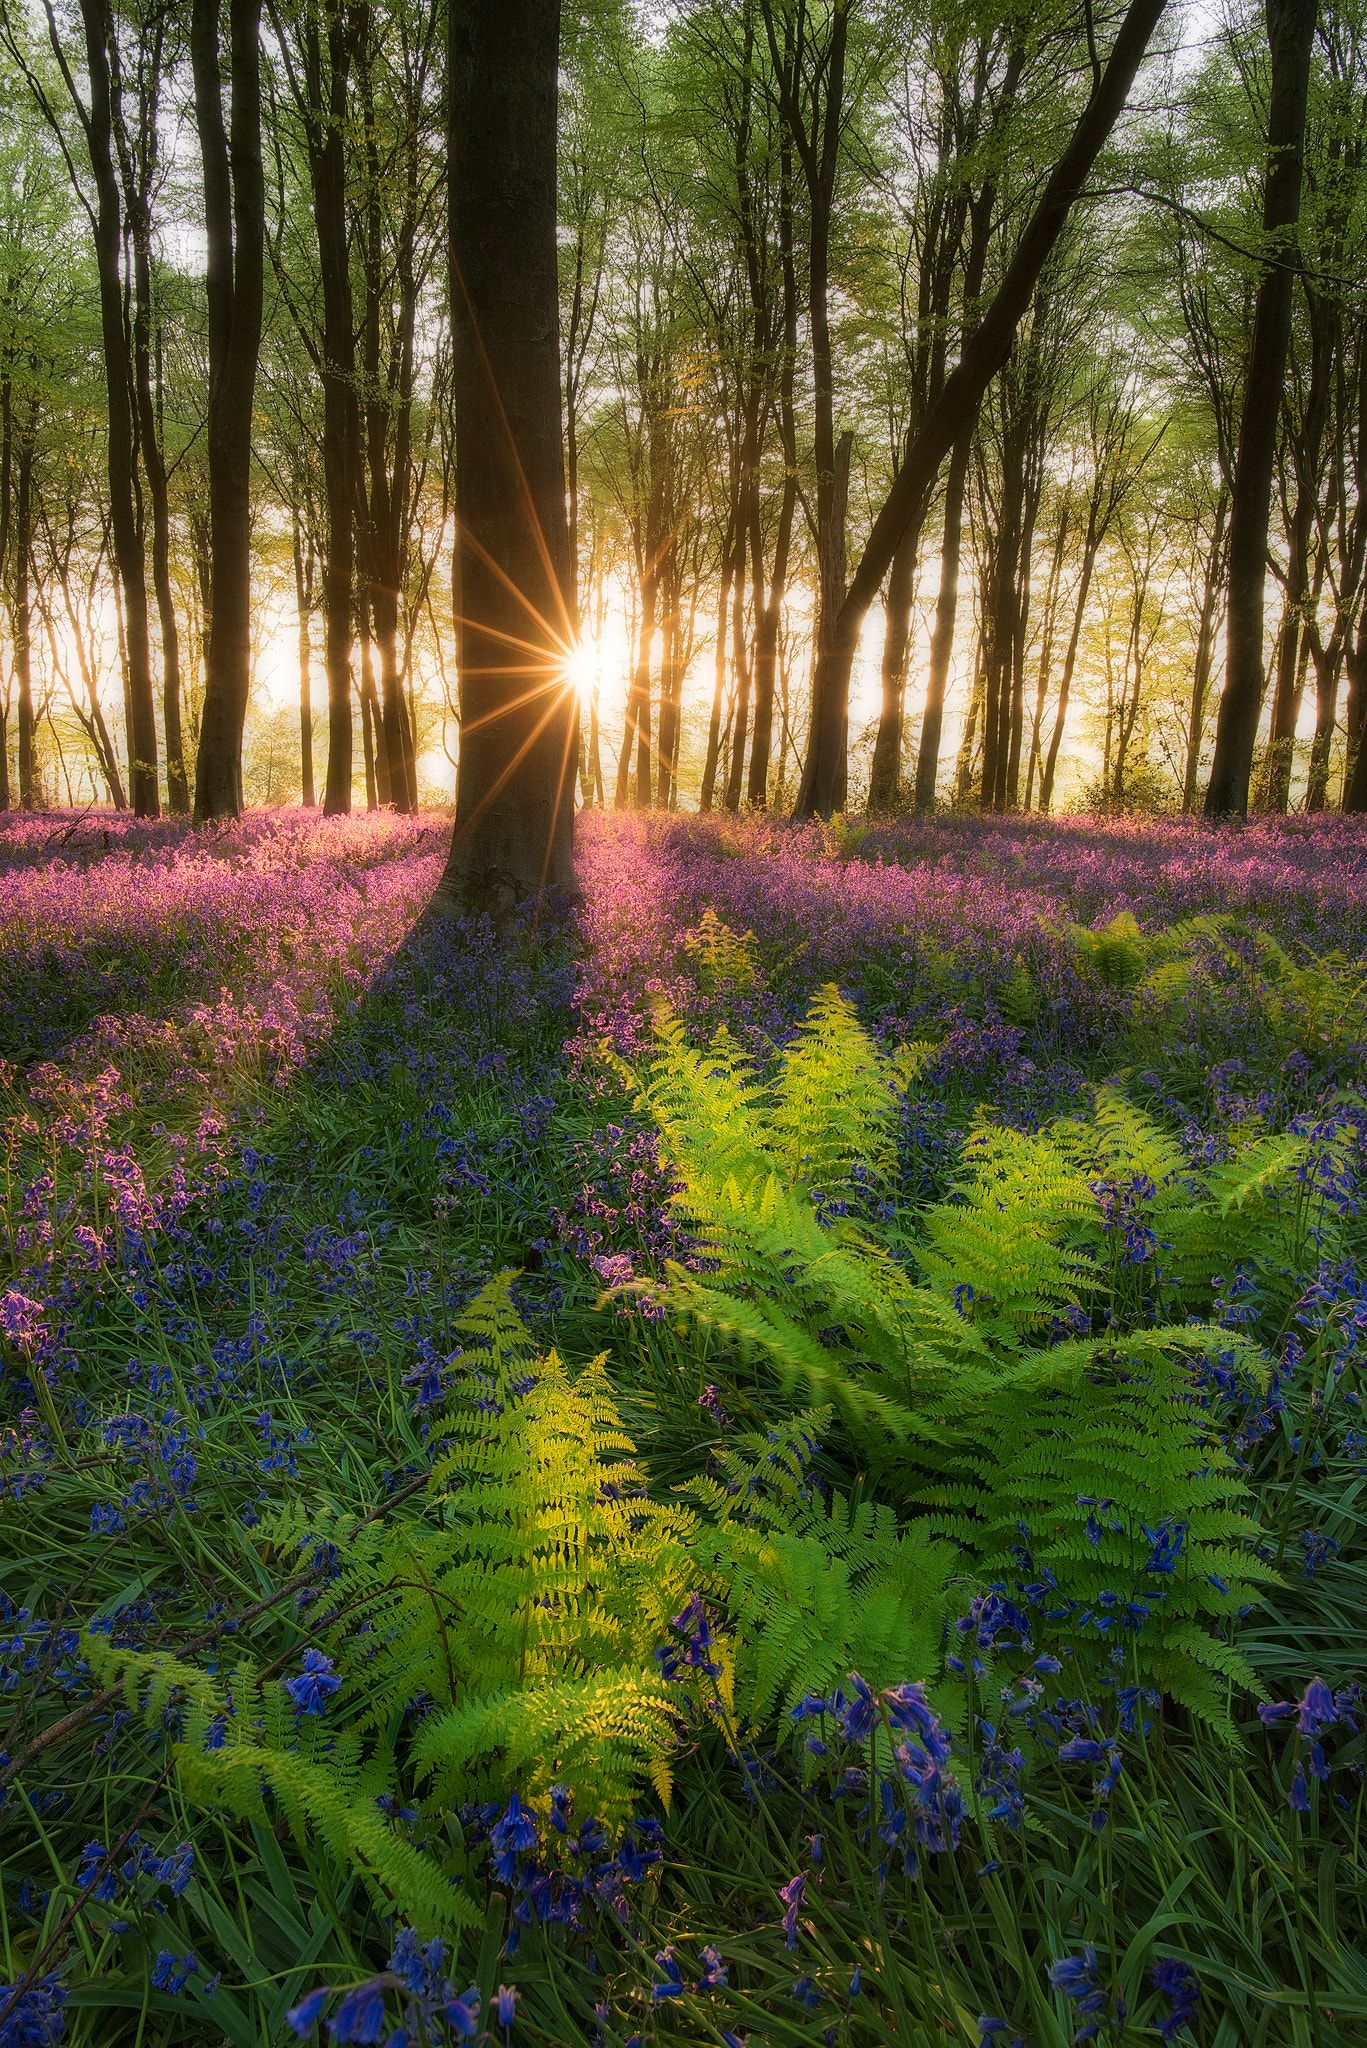 Happily Ever Real Life Fairy Tale Forests As Spring And Peak Bluebell Season Ignites Local Woodland Micheldever Nature Landscape Photos Beautiful Nature